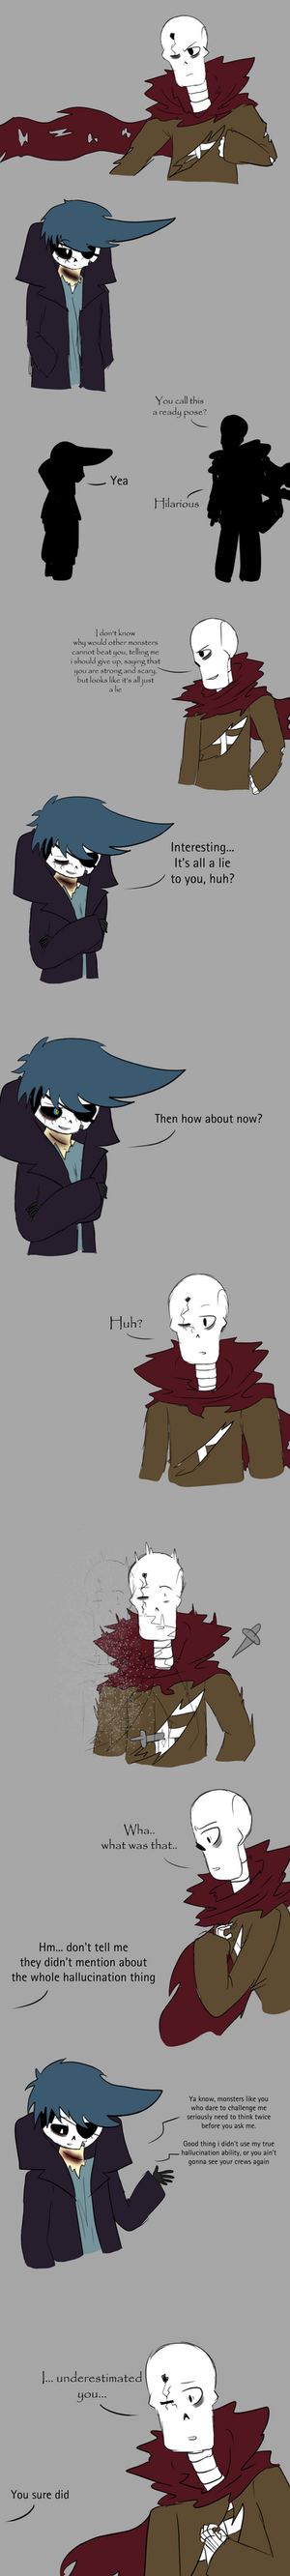 Never underestimate Rotis' ability by Scribbleshadows